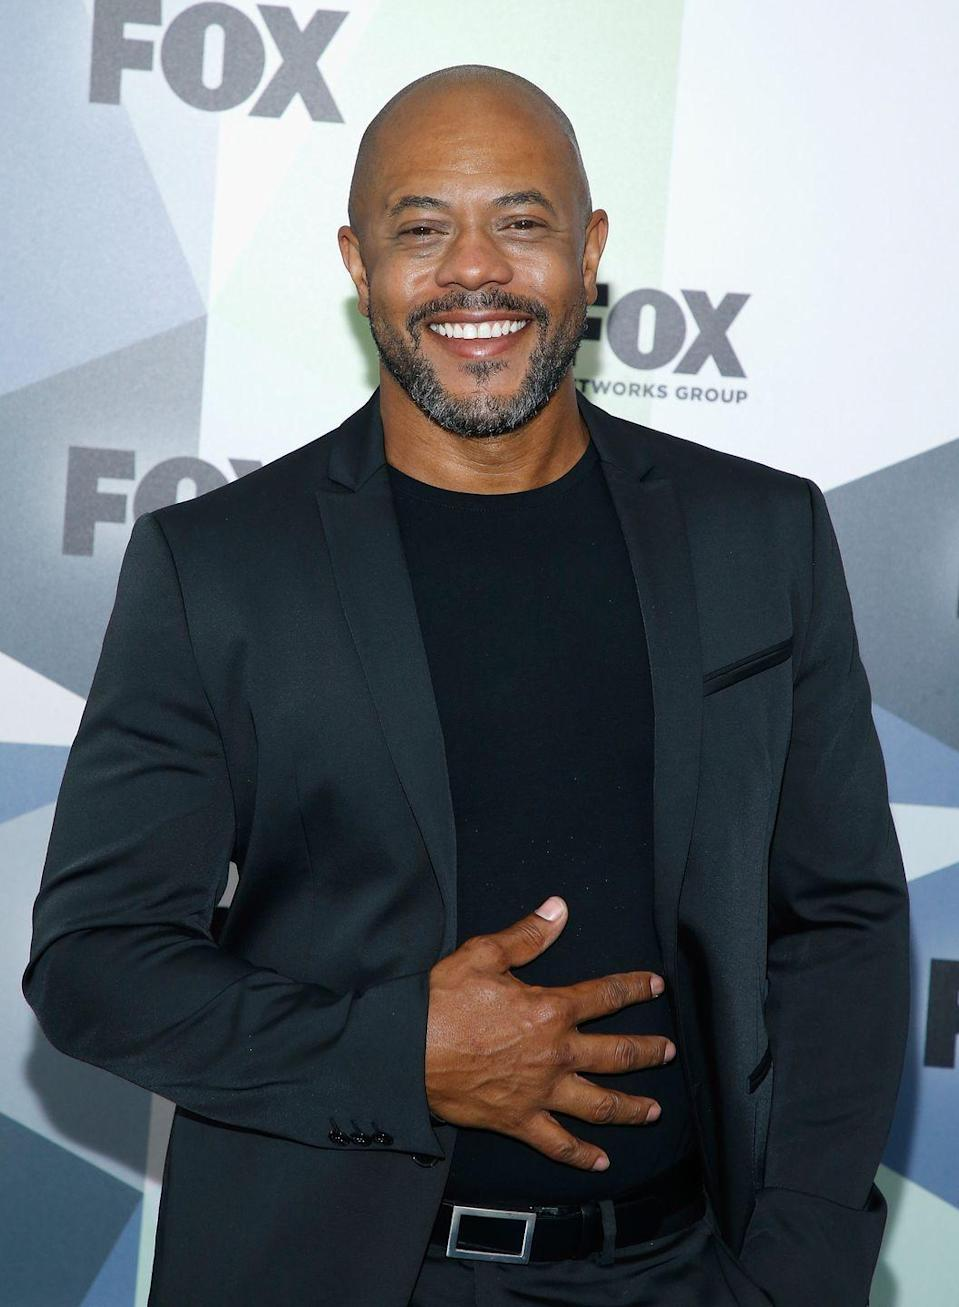 <p>The 45-year-old actor played FBI Agent Dennis Abbott in the series, which he joined in 2013. He's also known for his work on <em>Soul Food</em>, <em>Prison Break</em>, and <em>The Game</em>. </p>